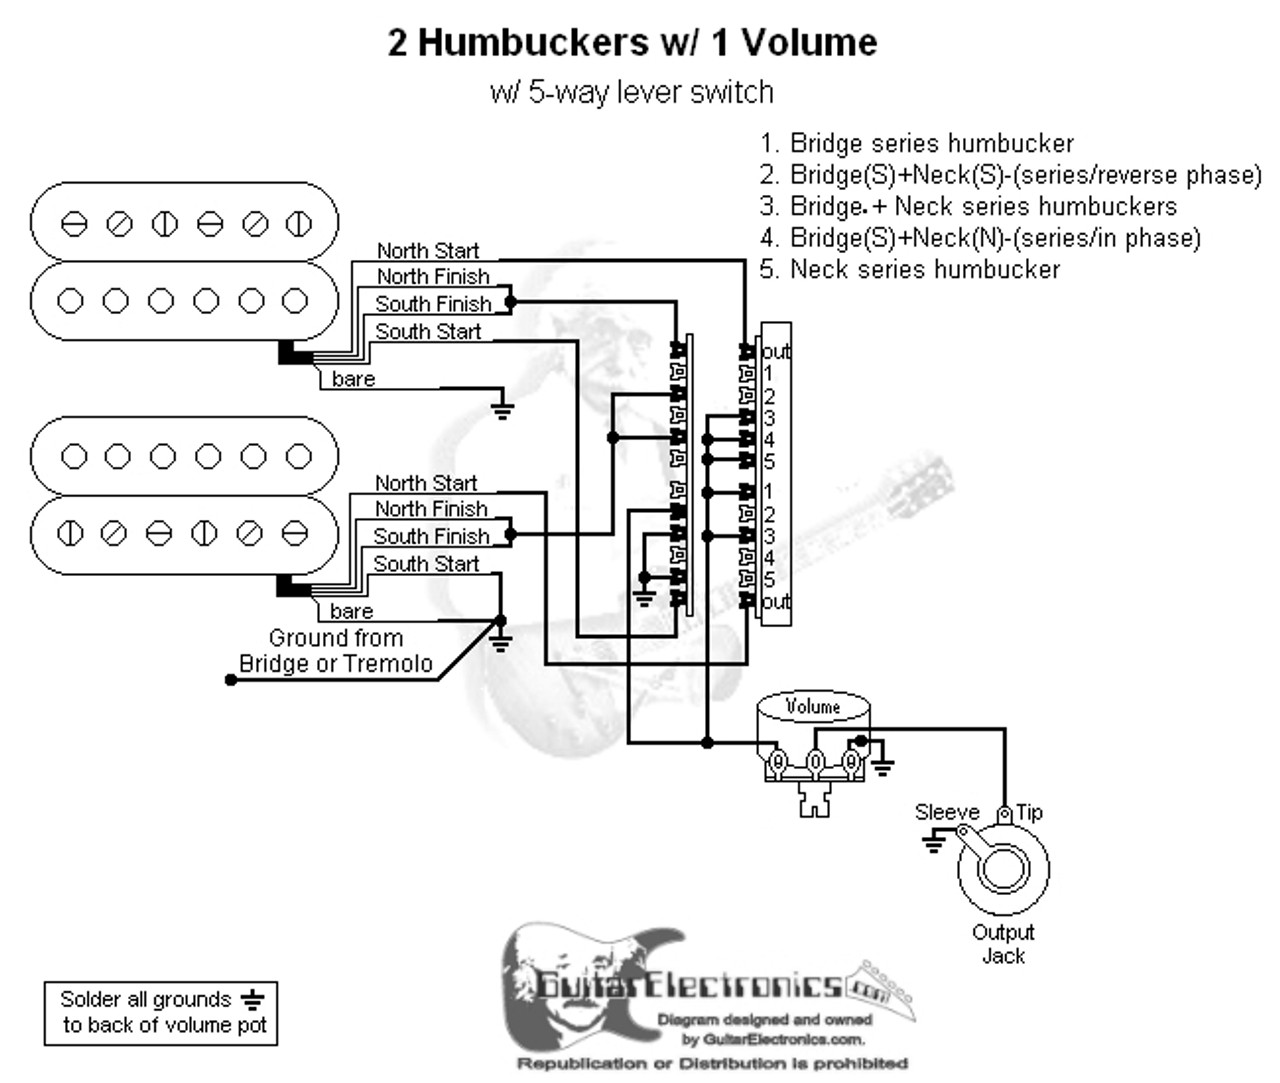 medium resolution of 2 humbuckers 5 way lever switch 1 volume 03 wiring diagram 2 humbuckers 5way lever switch 1 volume 1 tone 03